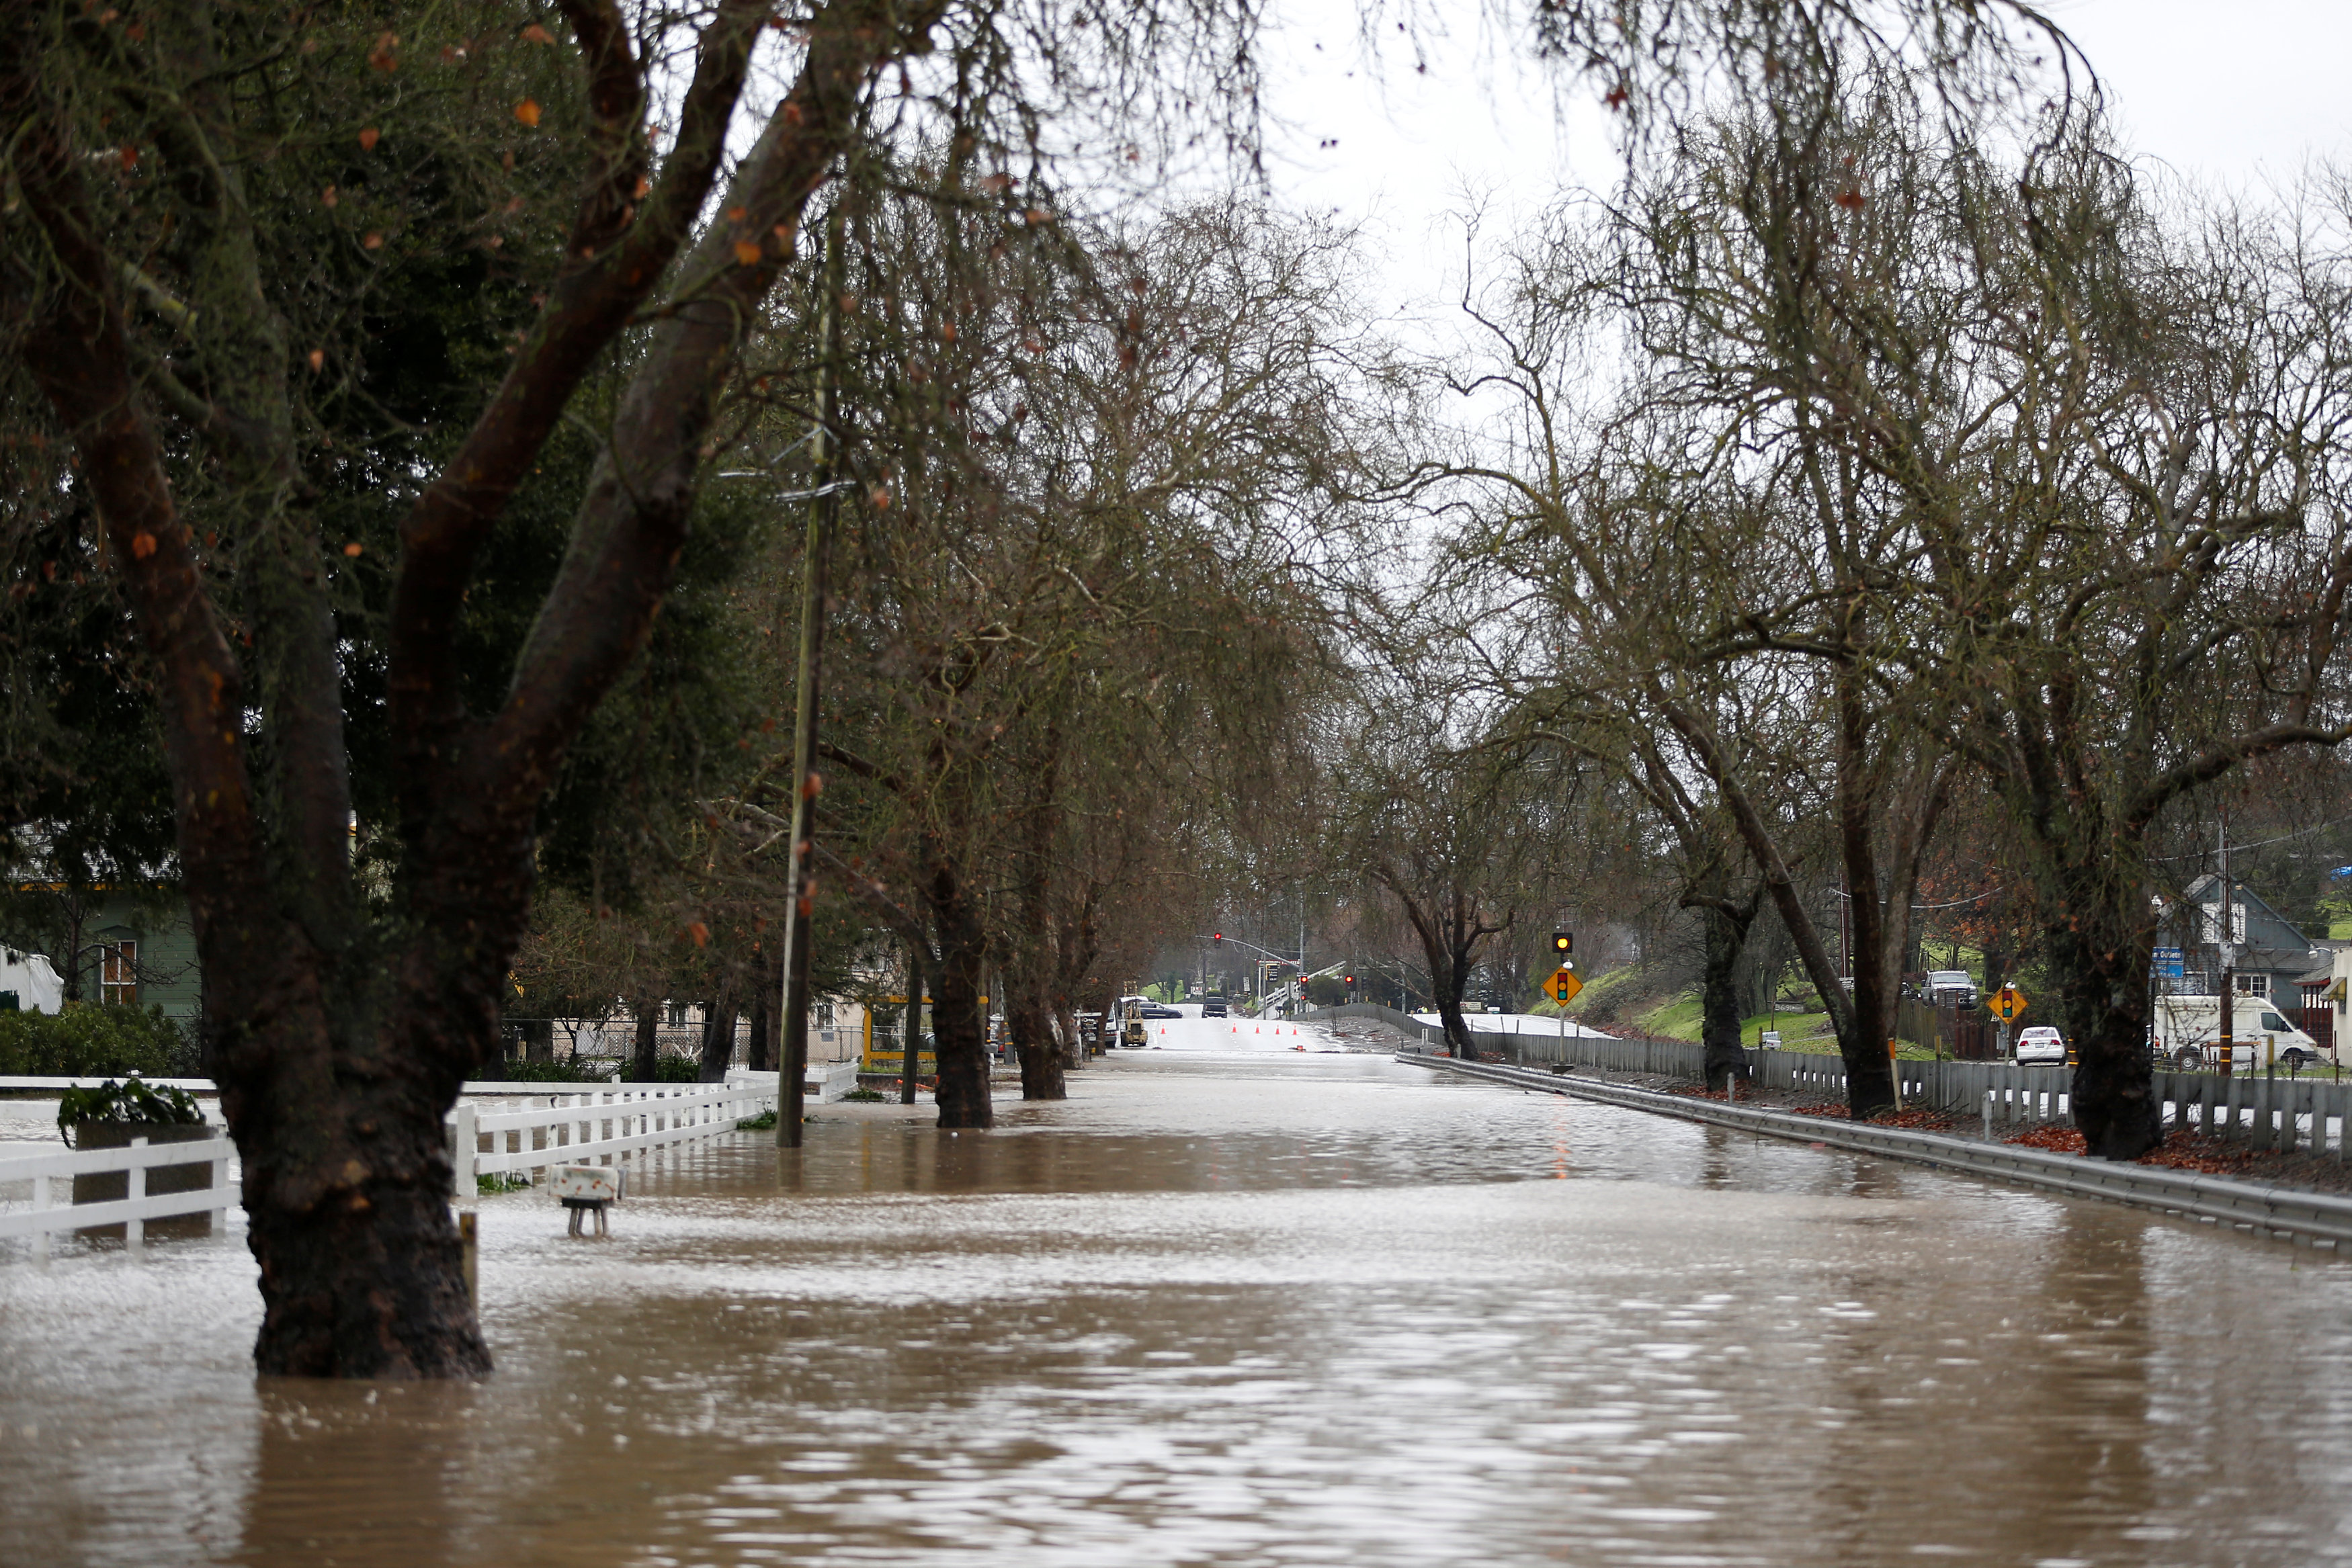 Flooded street in Calfornia